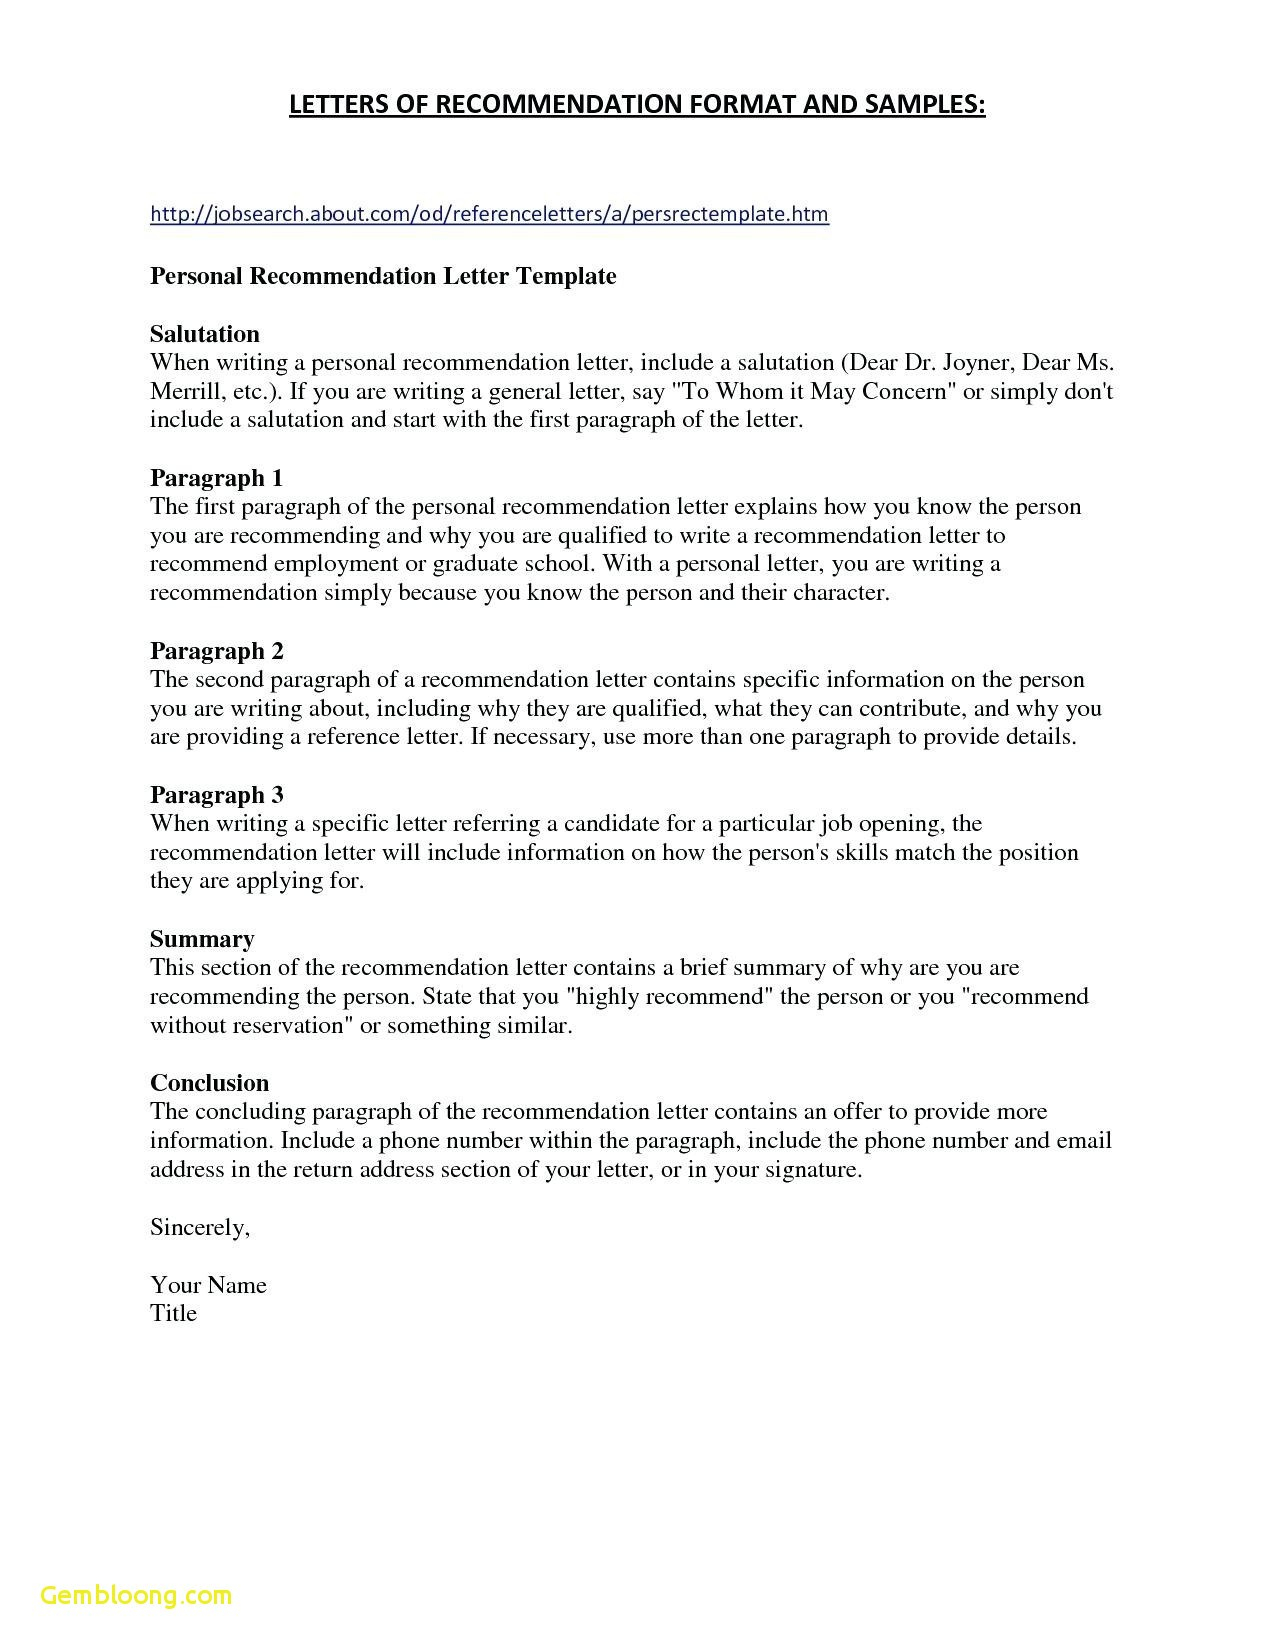 professional reference letter template Collection-Reference Letter format Personal Fresh References for Resume Template New Reference Letter format In Hindi 20-l